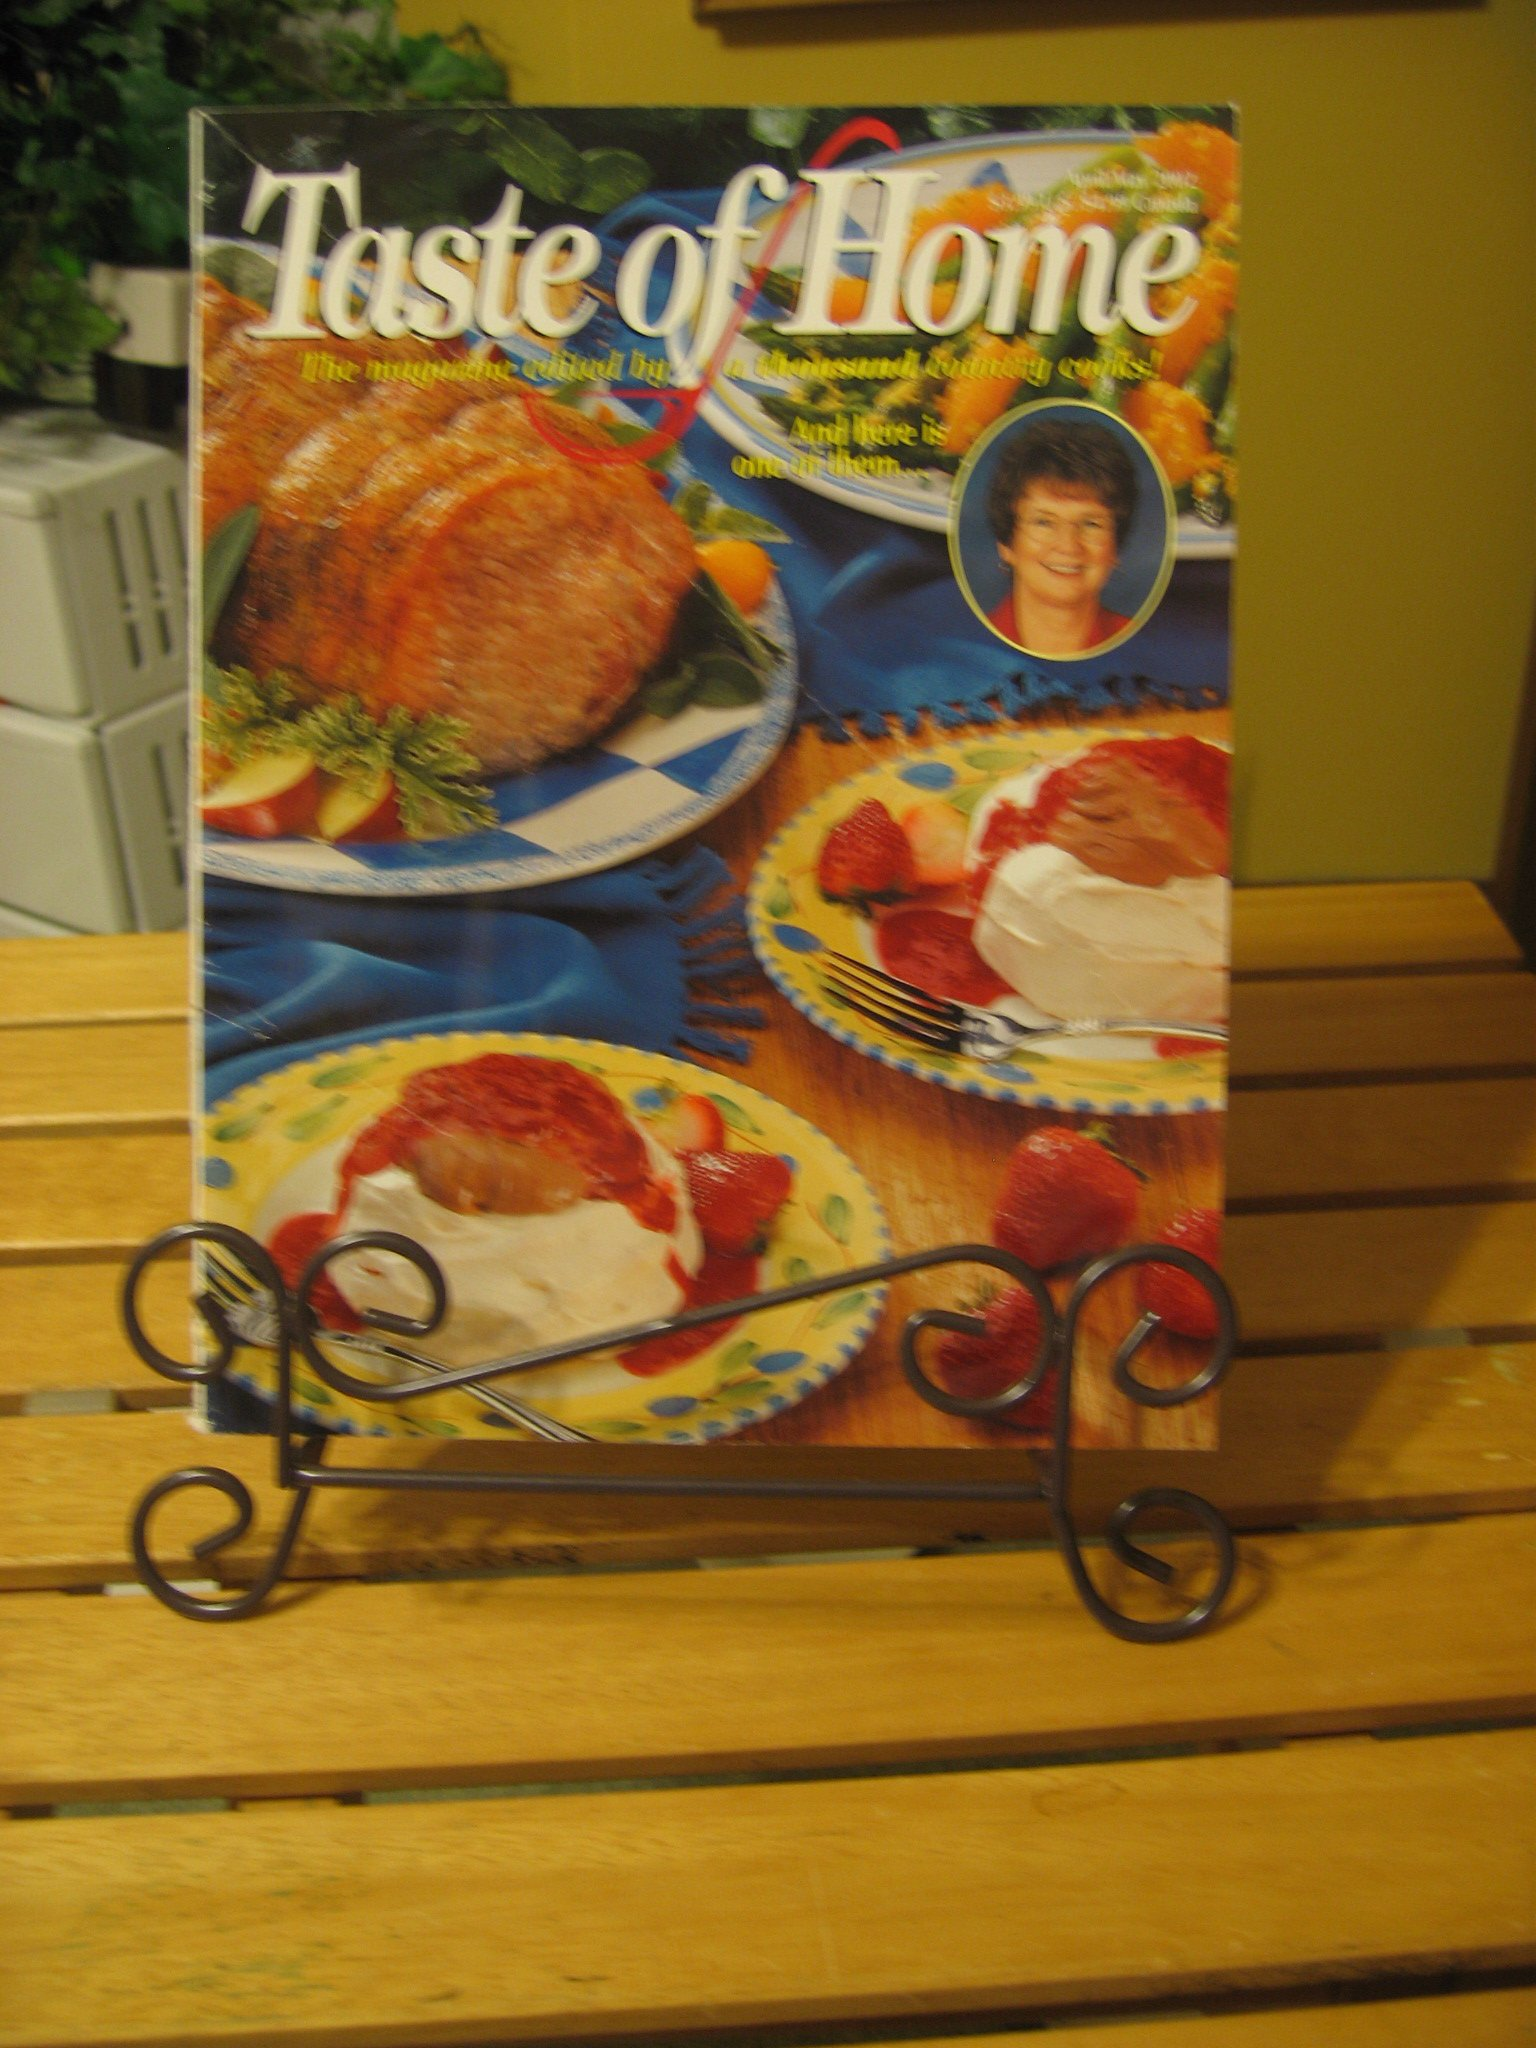 Download Taste of Home Magazine, April / May 2002 (Vol. 10, No. 2) ebook